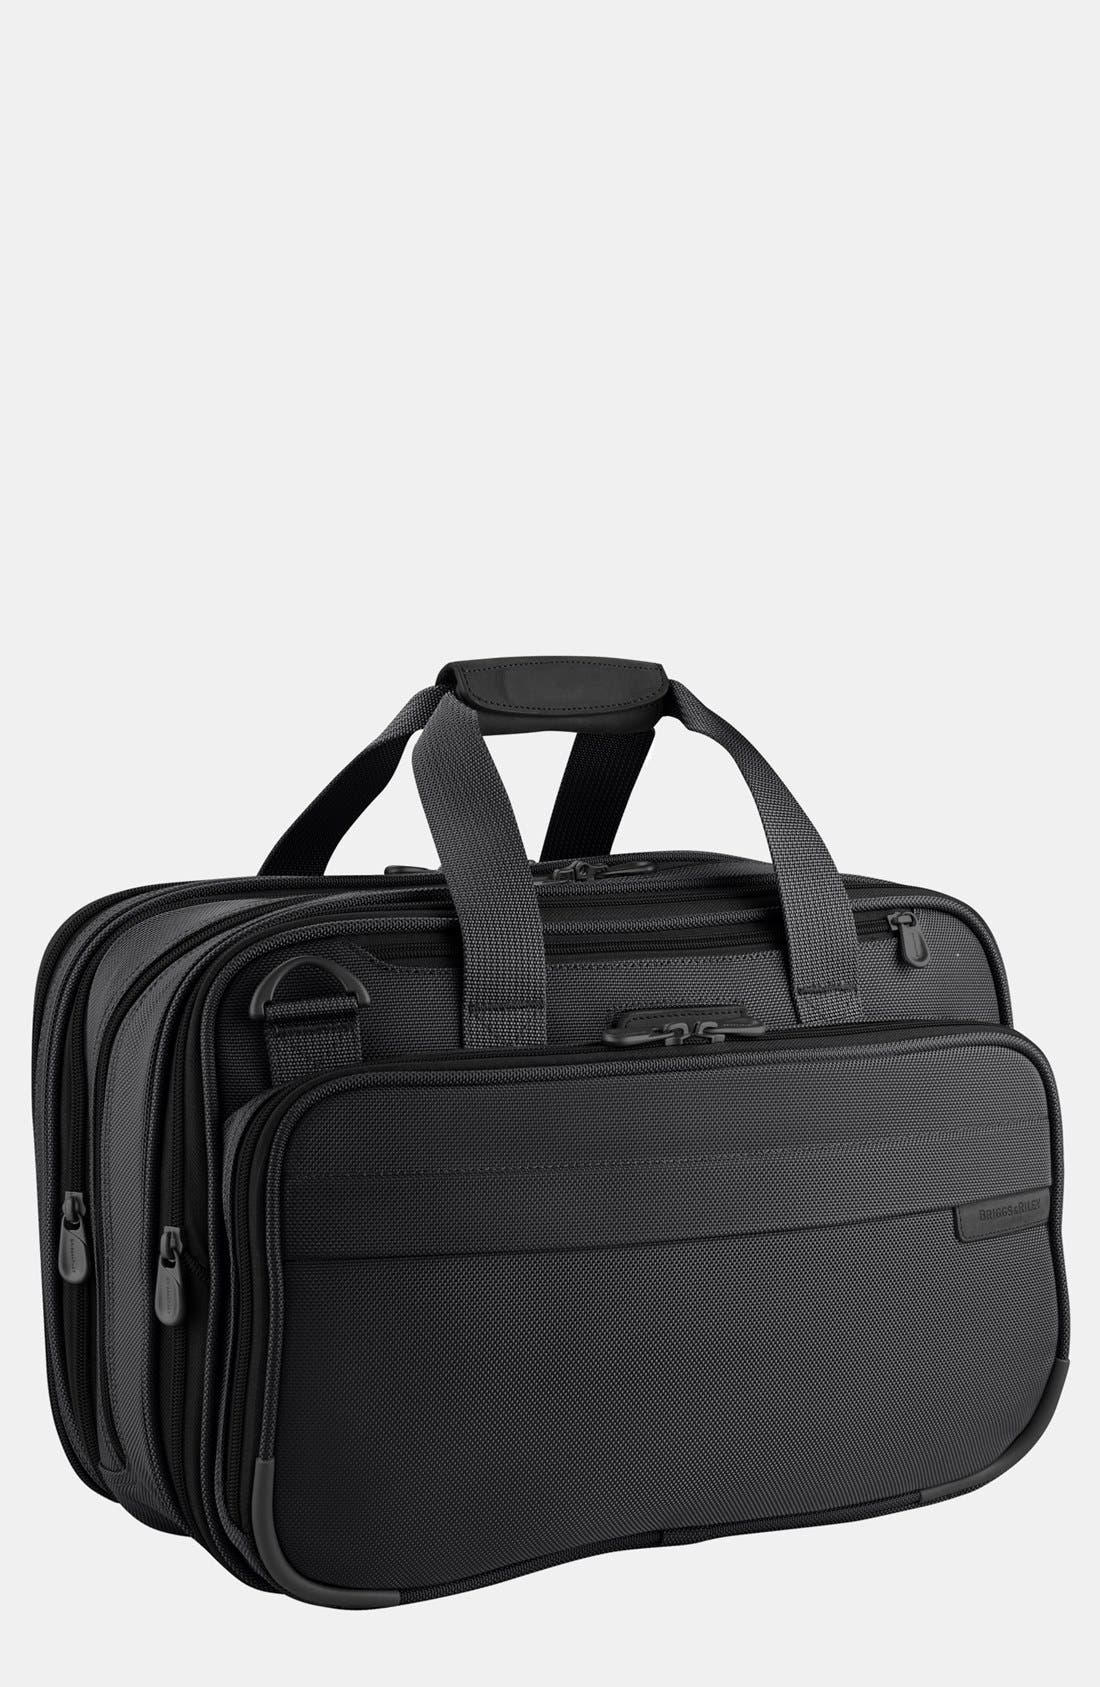 Expandable Cabin Bag,                         Main,                         color, Black